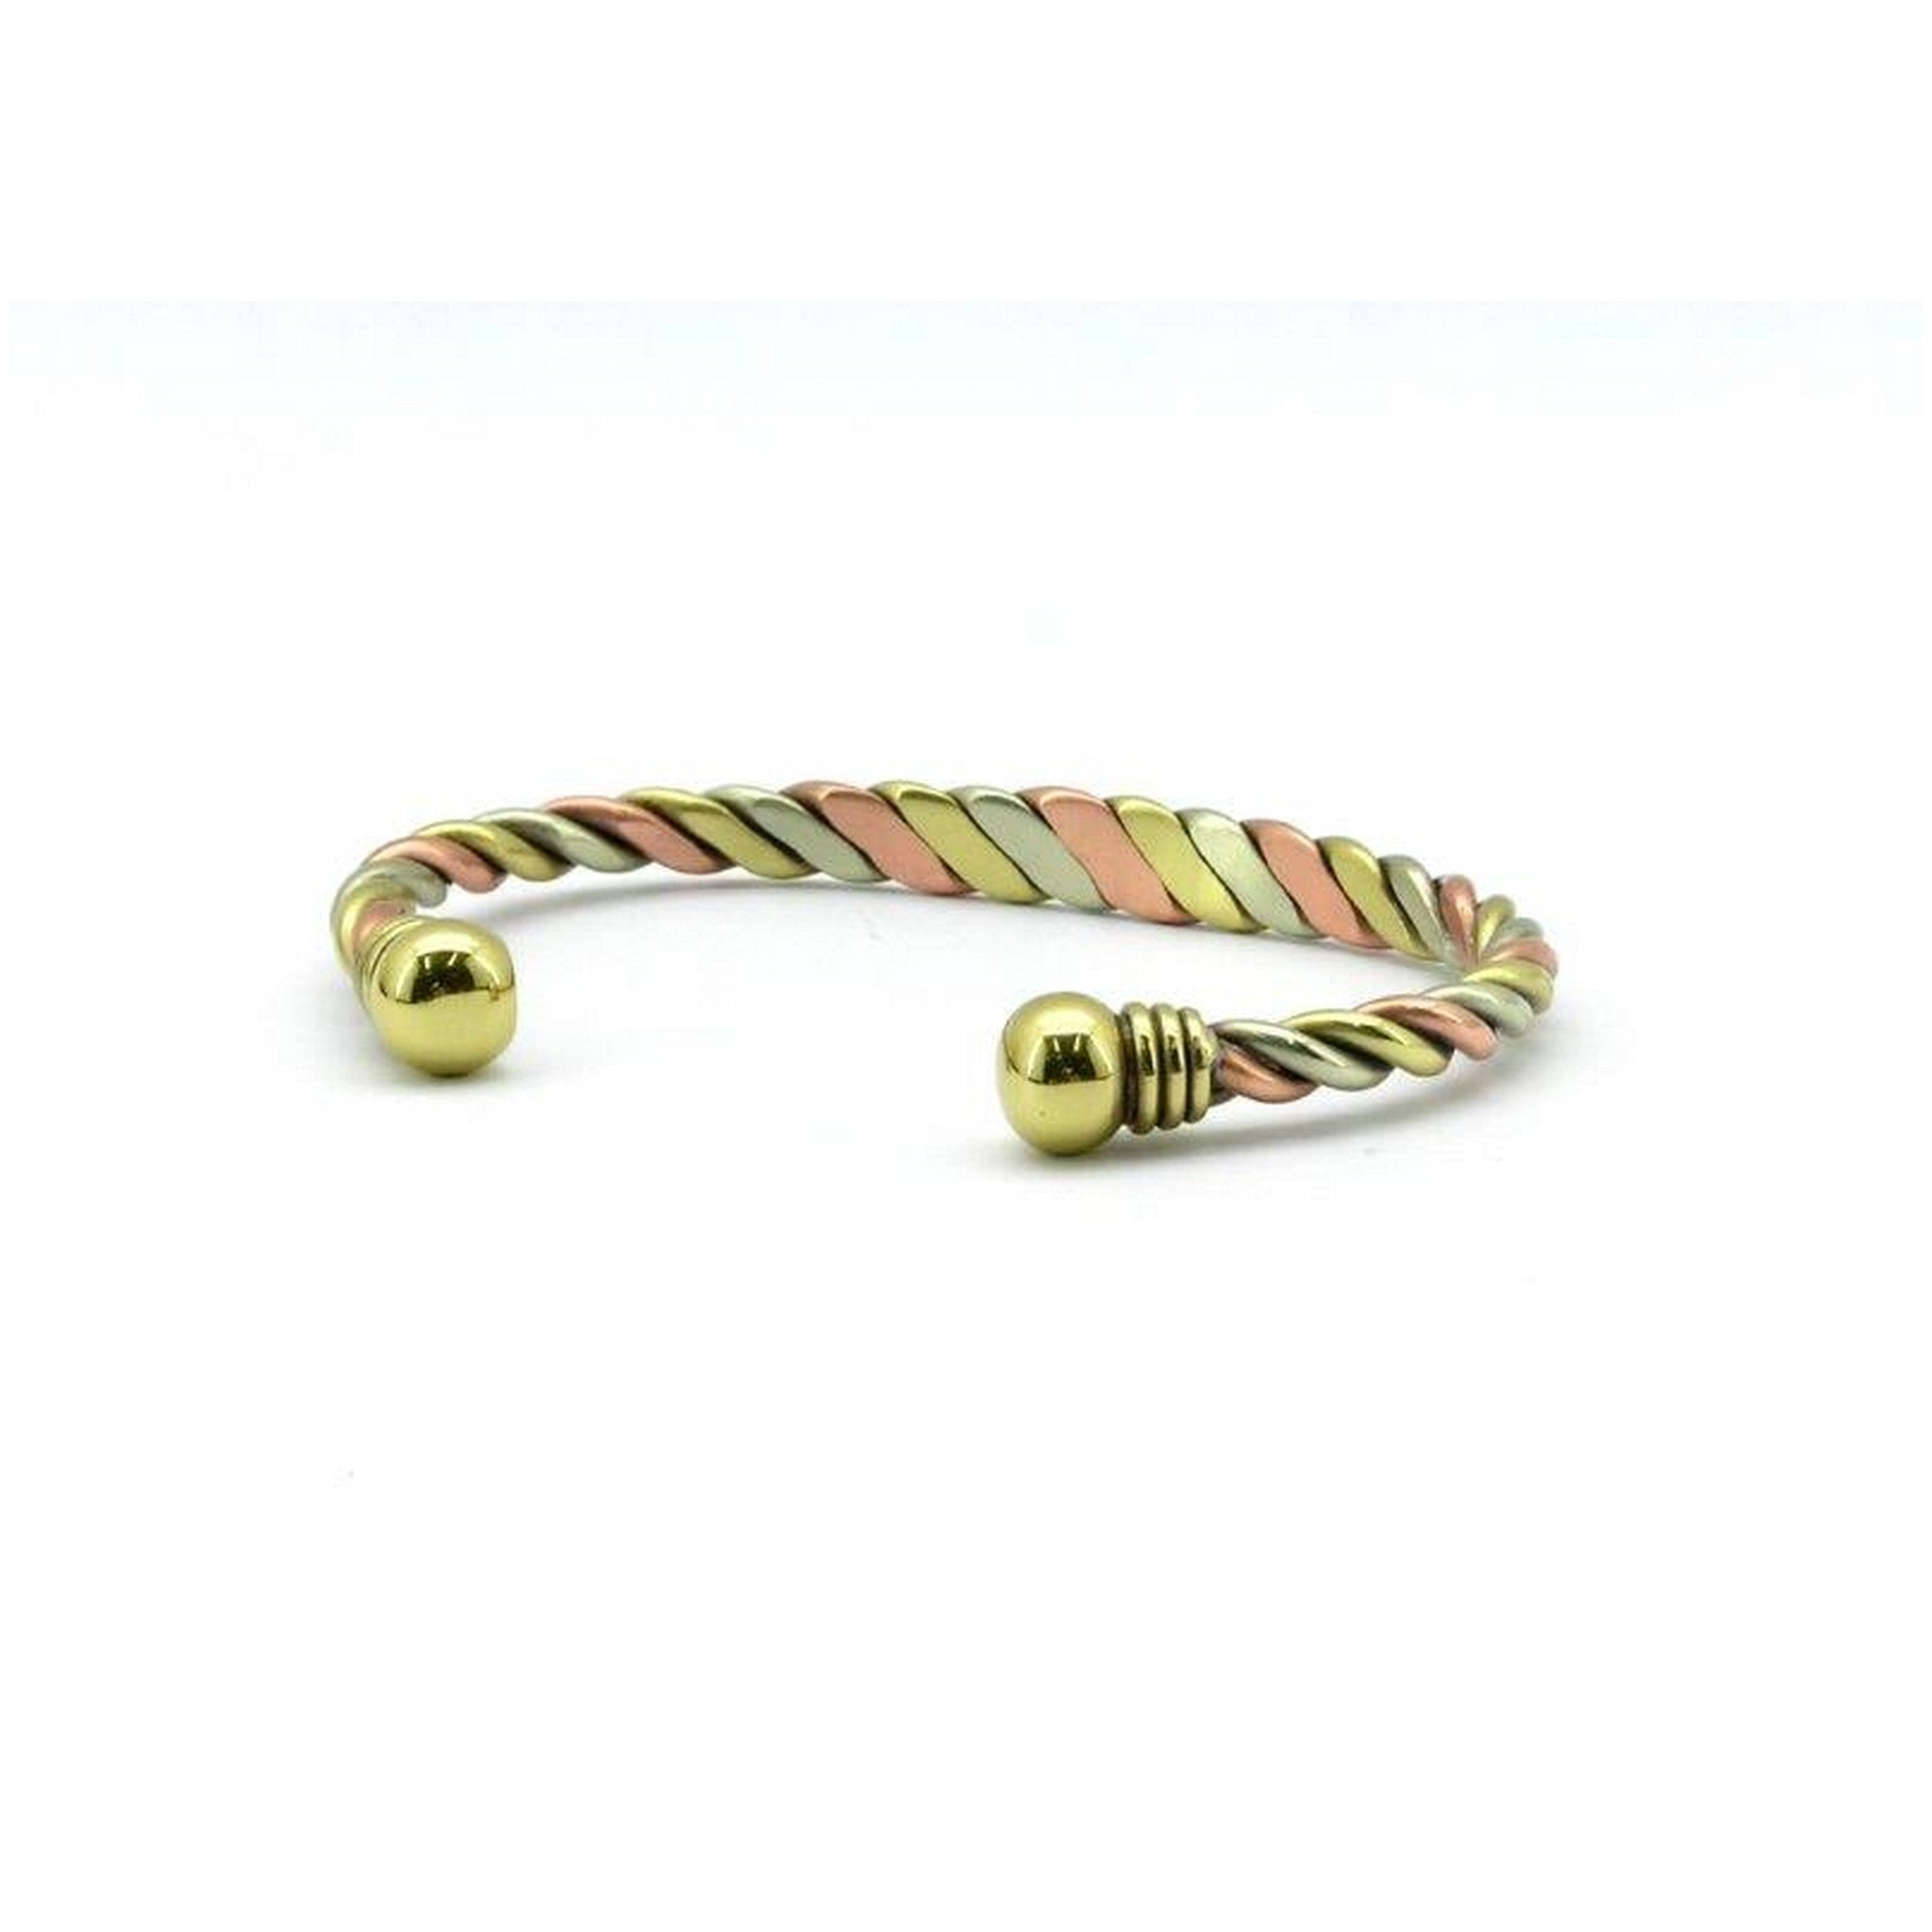 Magnetic Copper High Polish Silver,Rose Gold & Yellow Gold Twisted Health Bangle,2 Magnets, 1800 Gauss